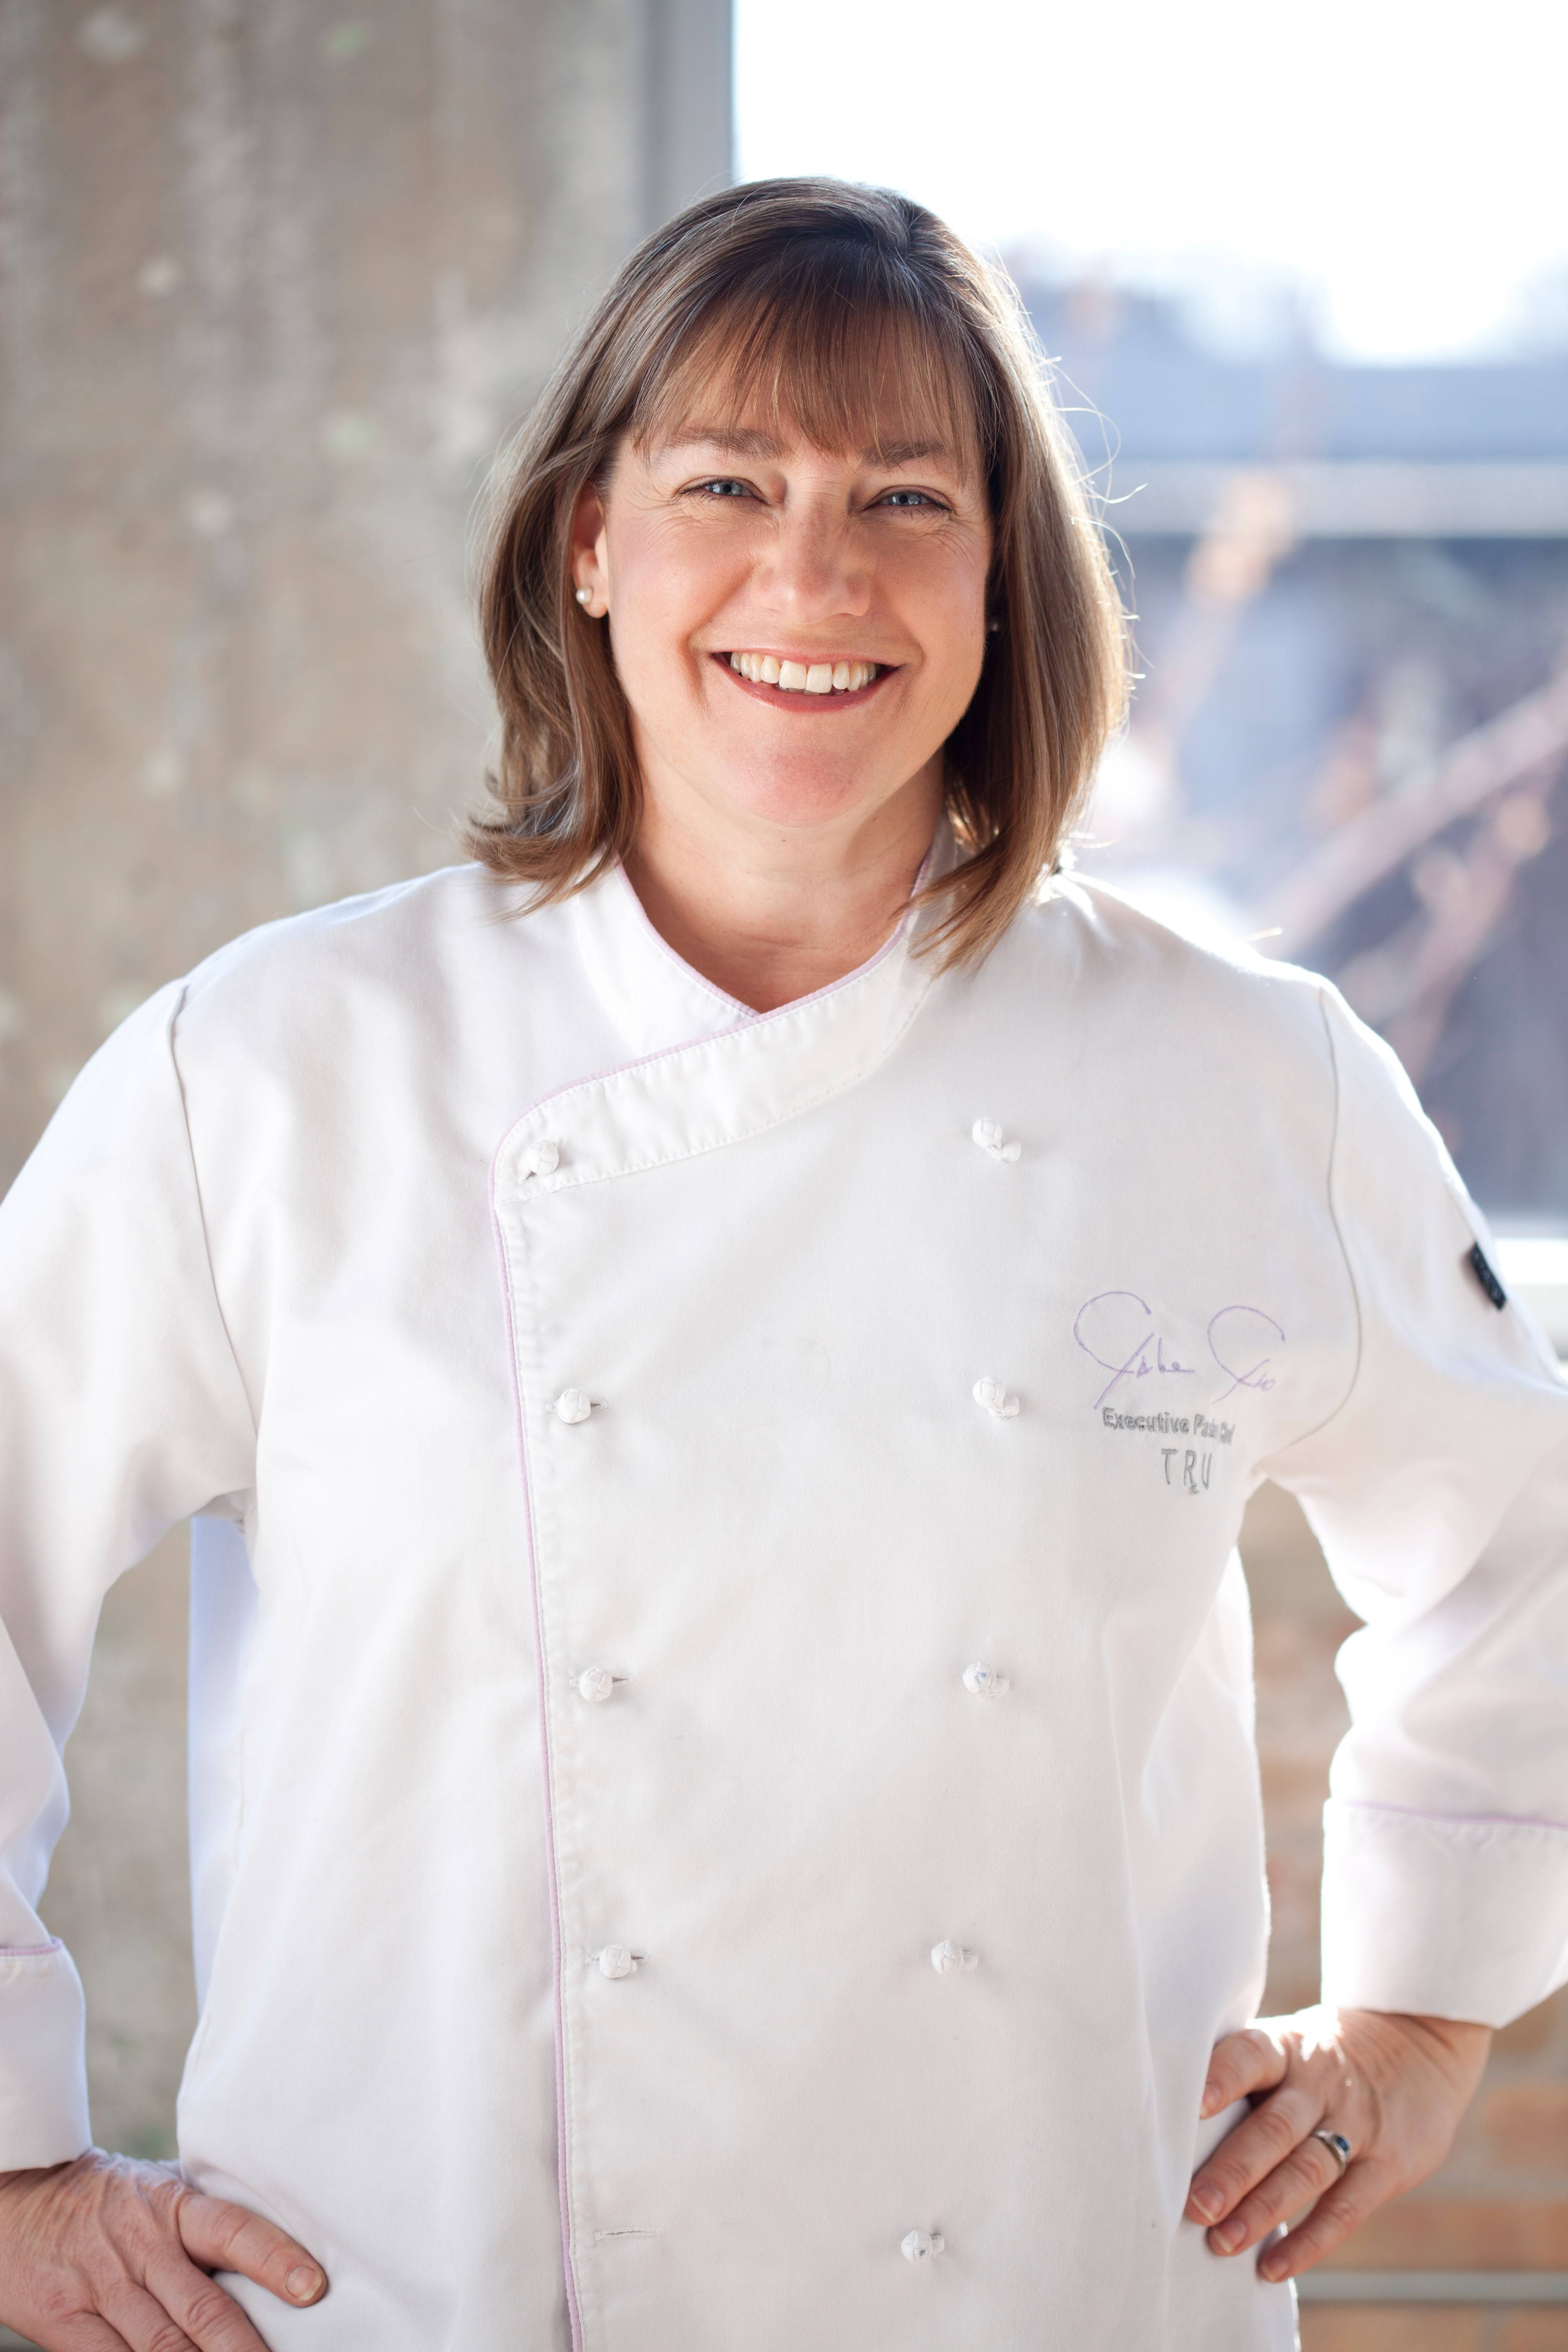 Chef du Jour: Catching up with Gale Gand over 'Lunch!'